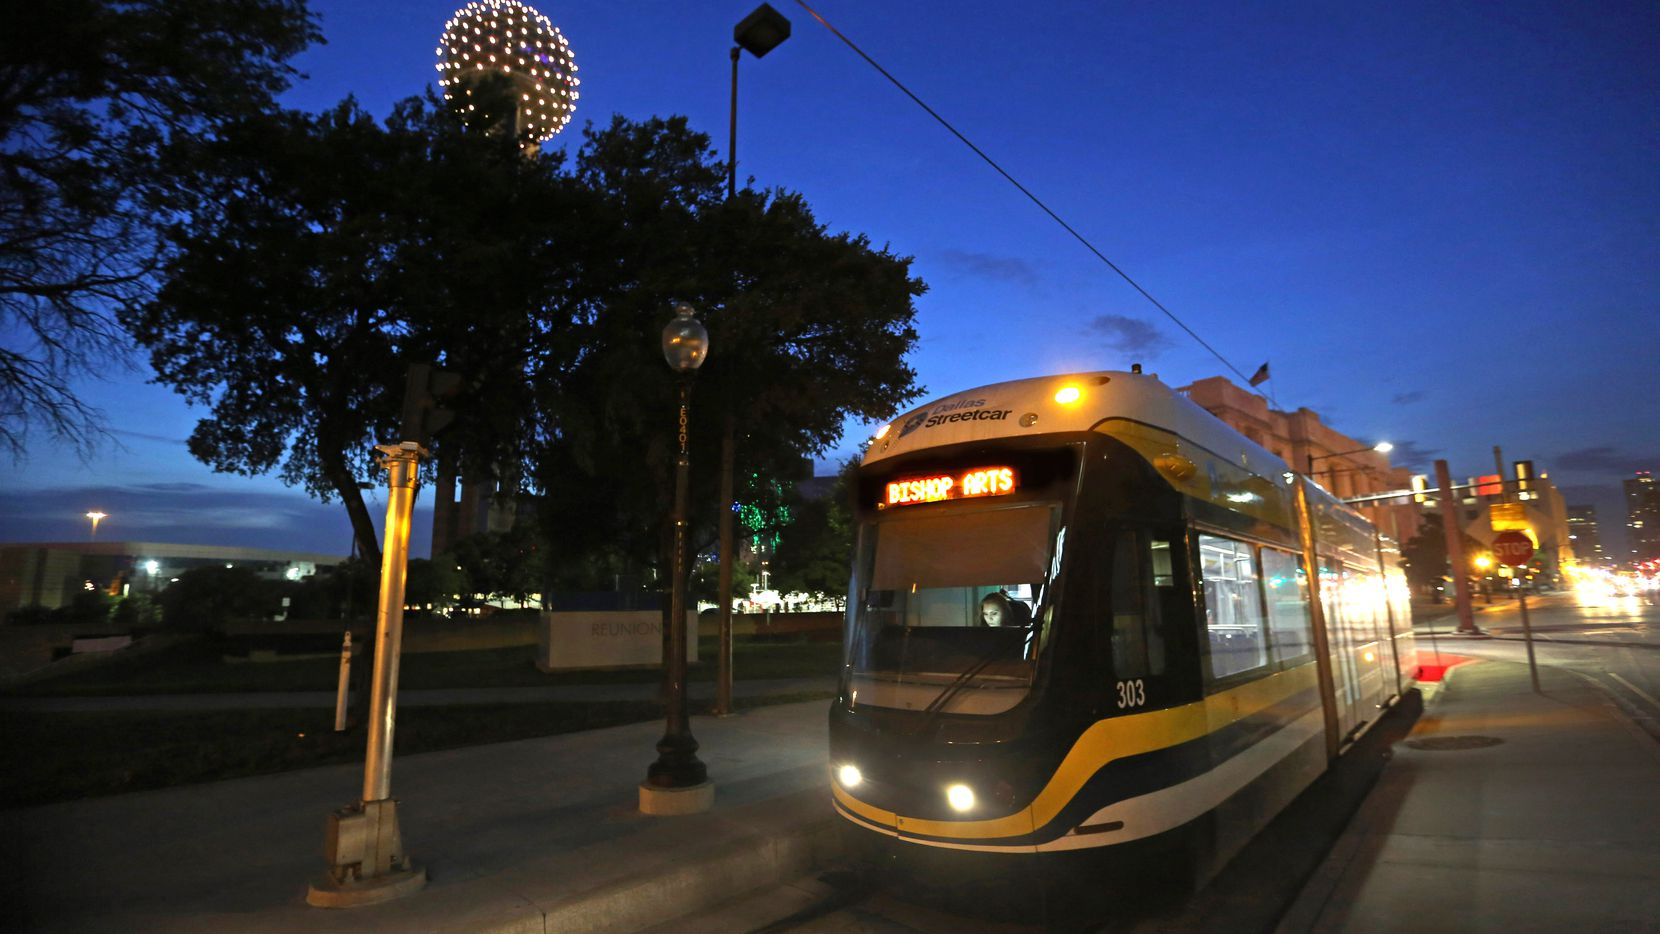 Maybe the public transportation in Dallas isn't stellar. But the Dallas Streetcar is an excellent new addition to connect downtown Dallas and North Oak Cliff, and there are tons of restaurants, bars and shops to visit along the way.